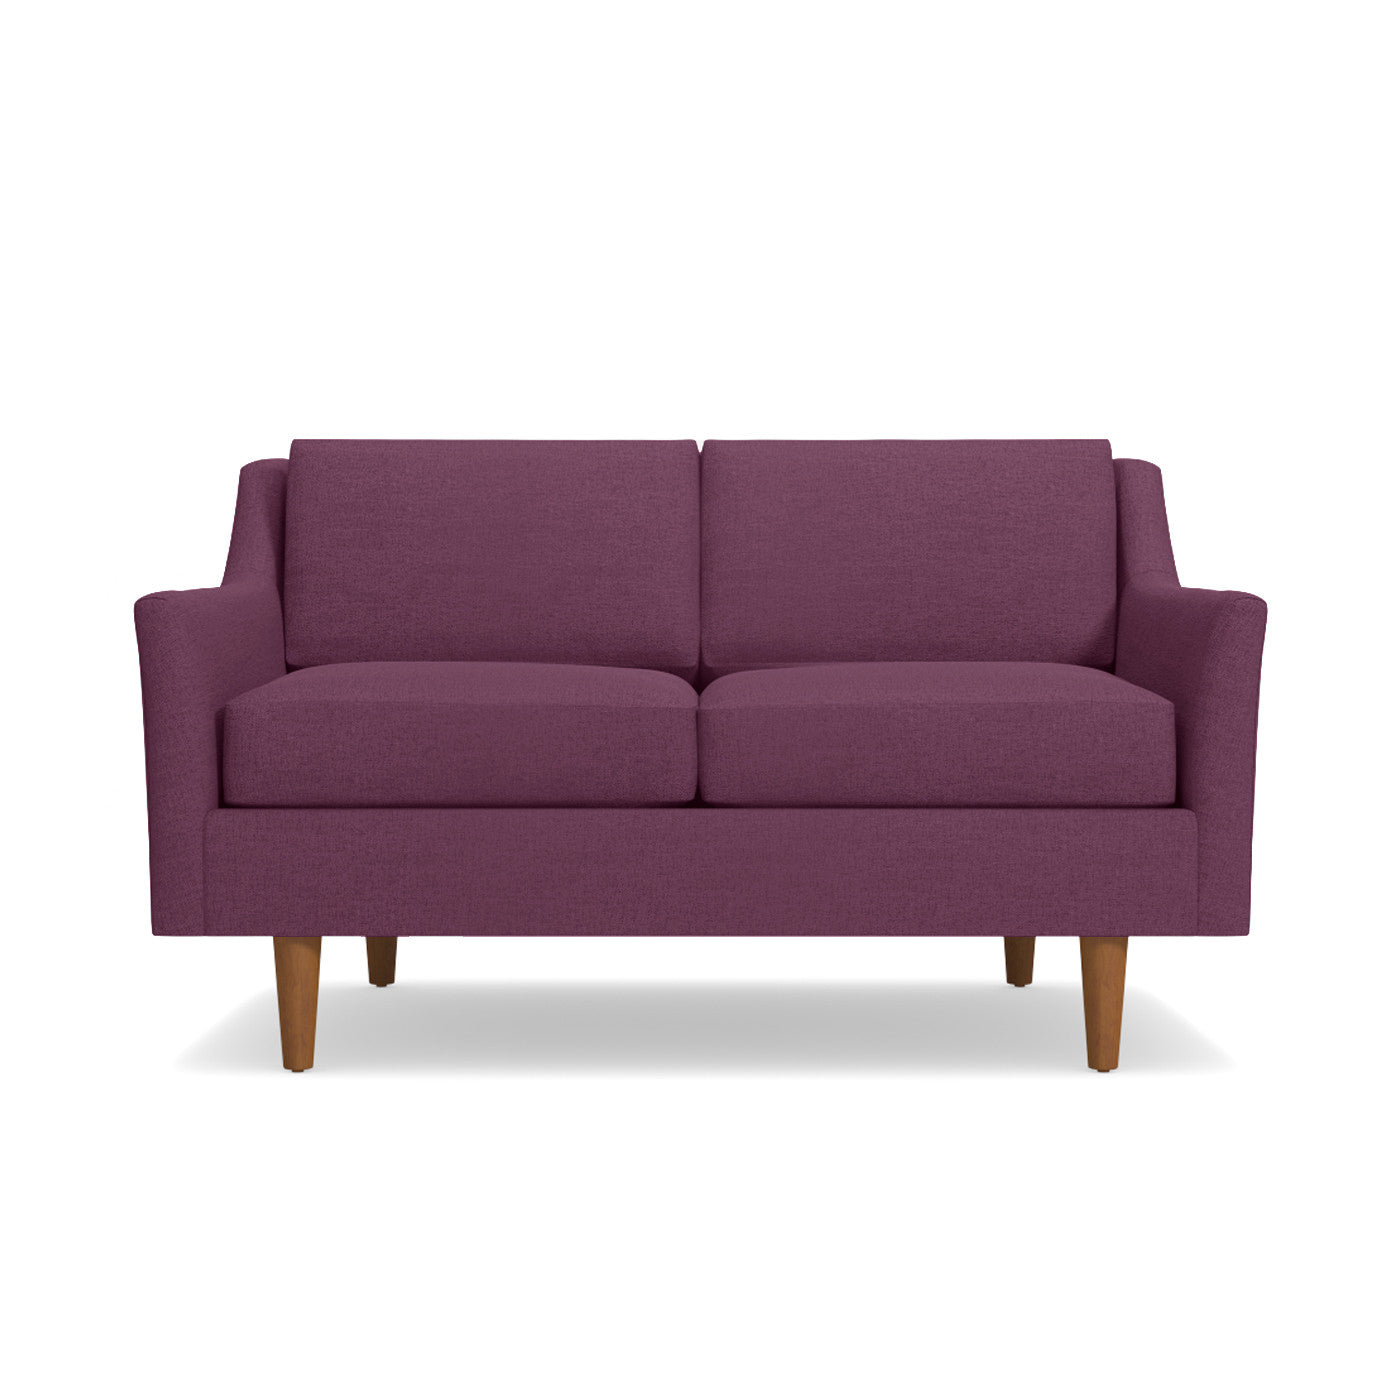 Sutton Apartment Size Sofa from Kyle Schuneman CHOICE OF FABRICS